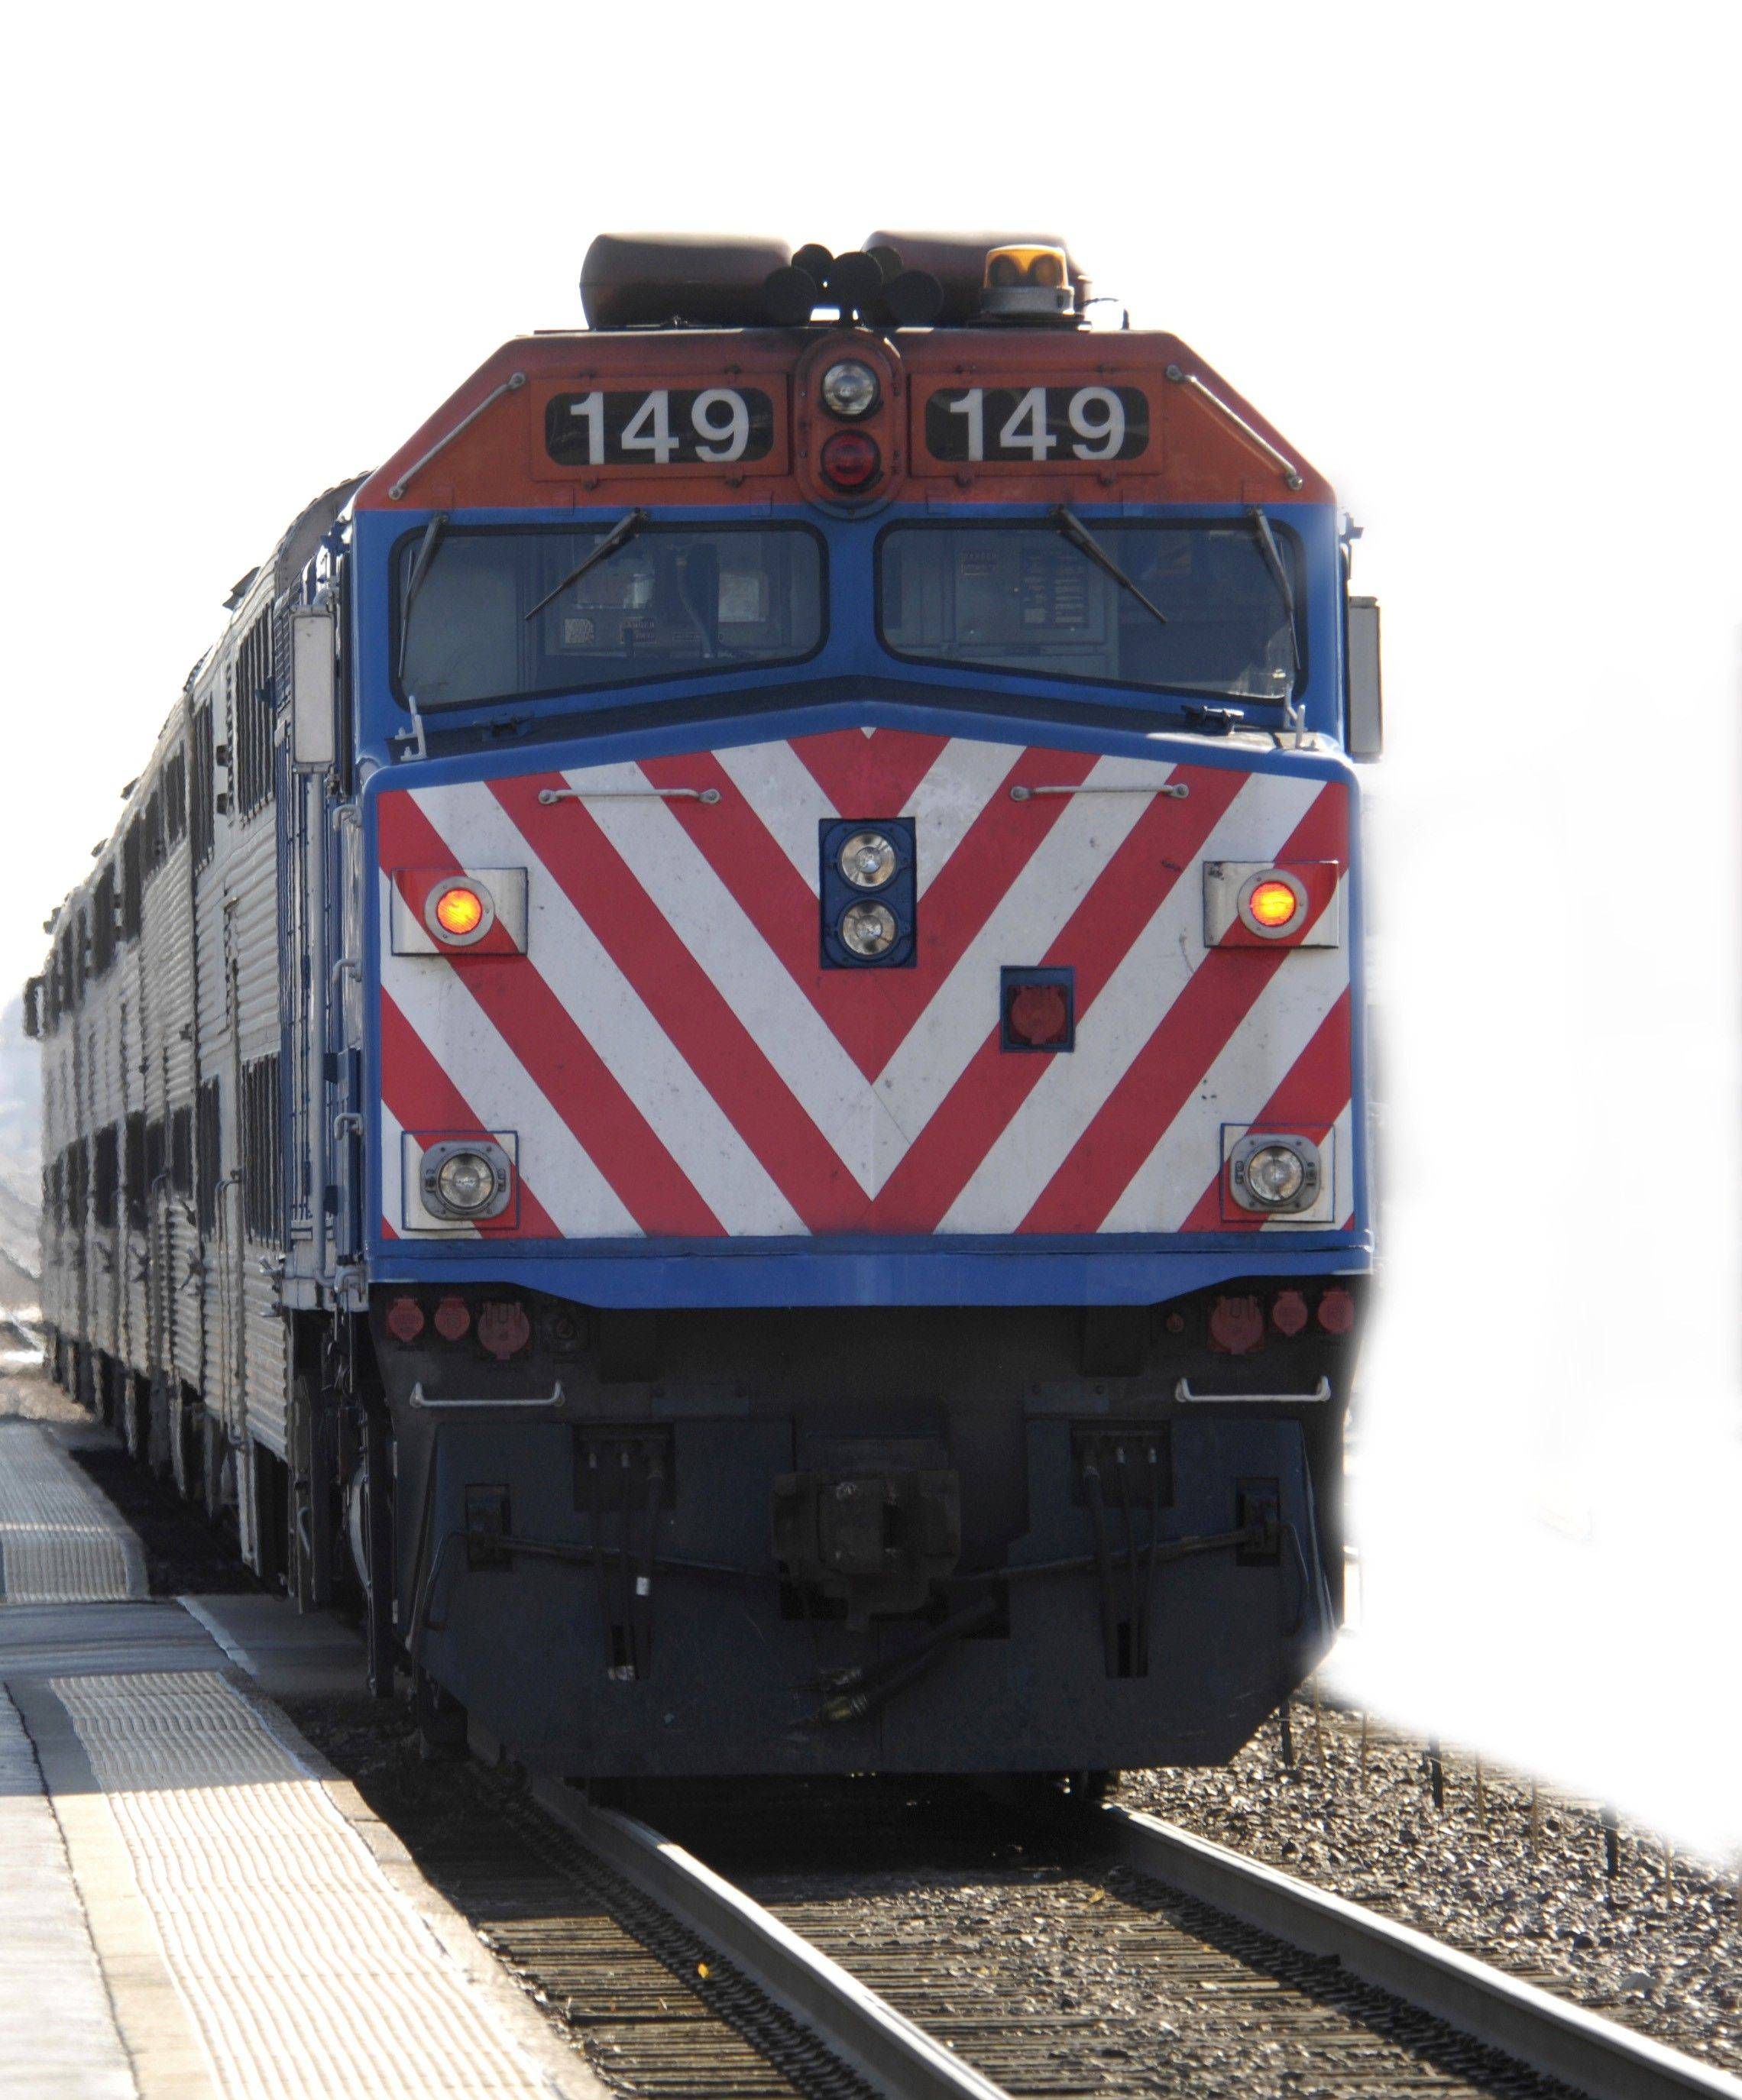 No Metra fare hike, but service cuts loom without state aid